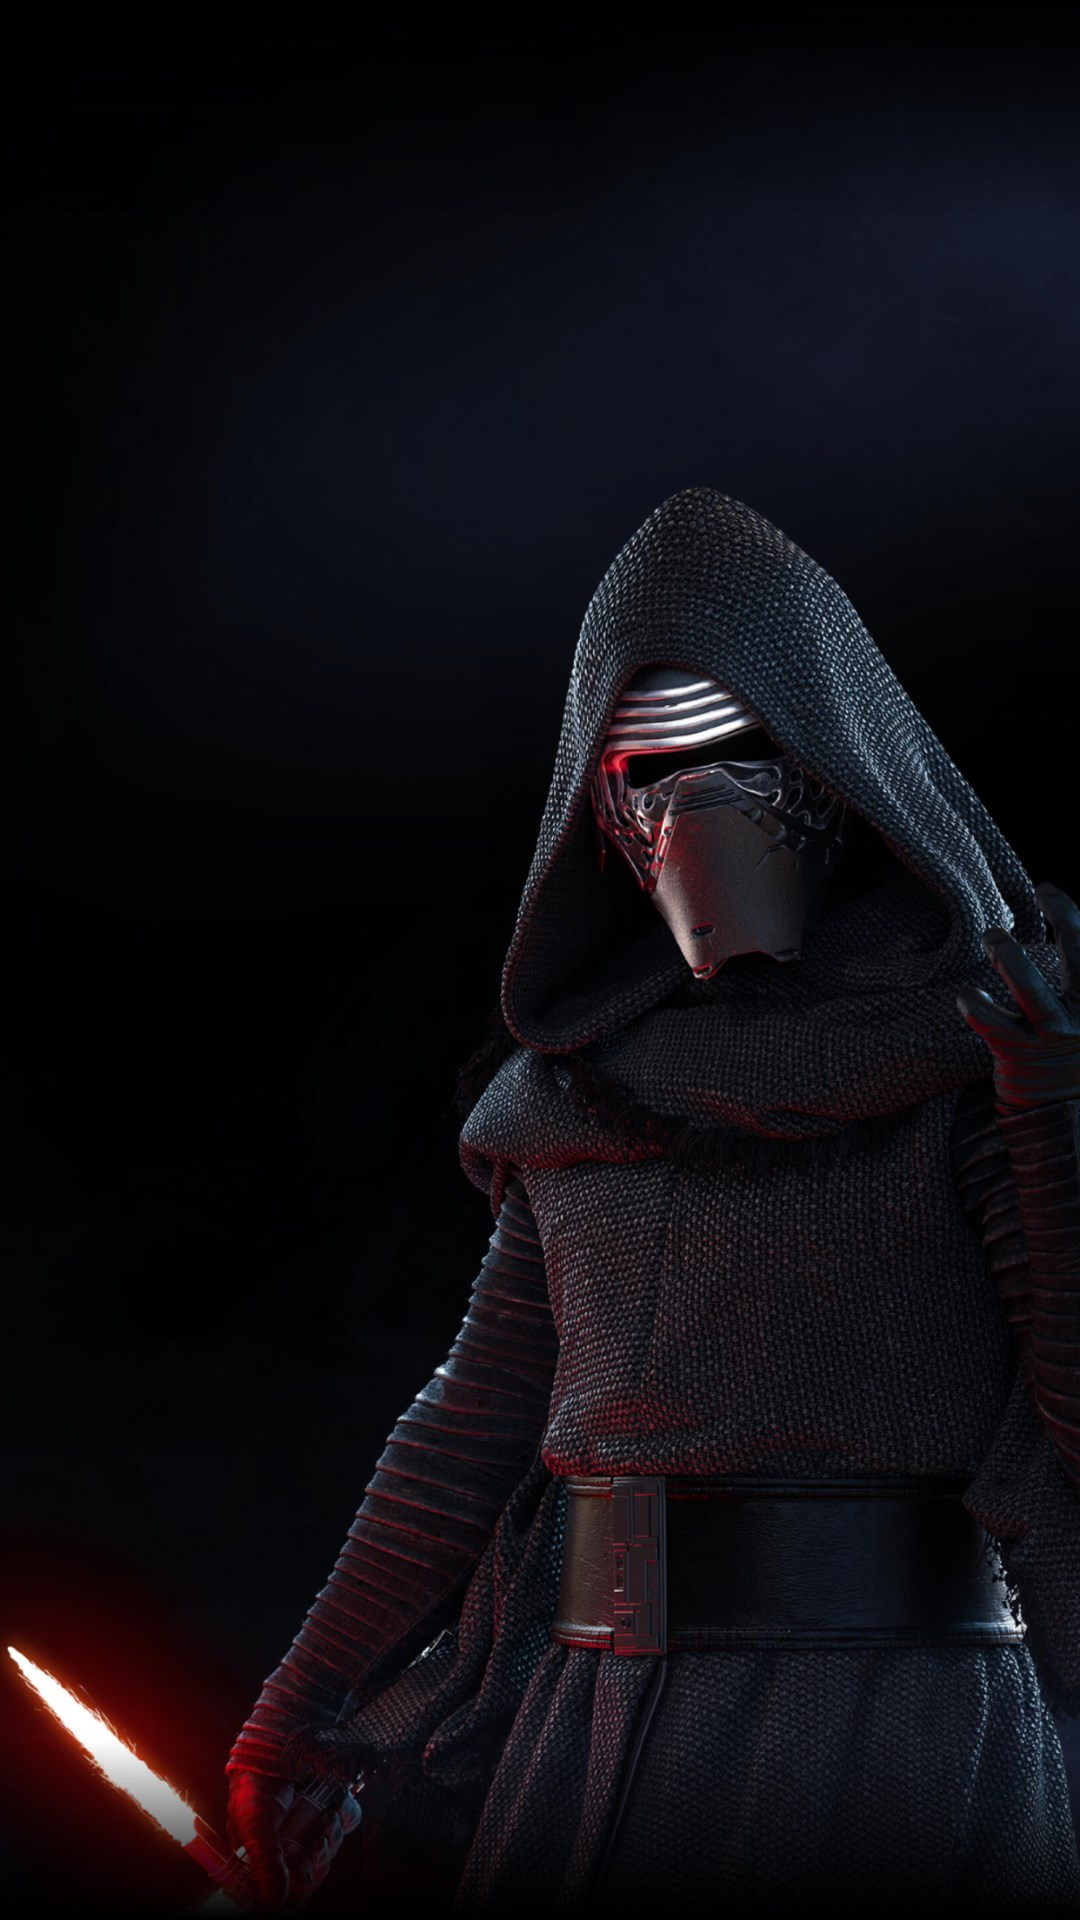 Kylo Ren from Star Wars Battlefront 2 wallpaper 1080x1920